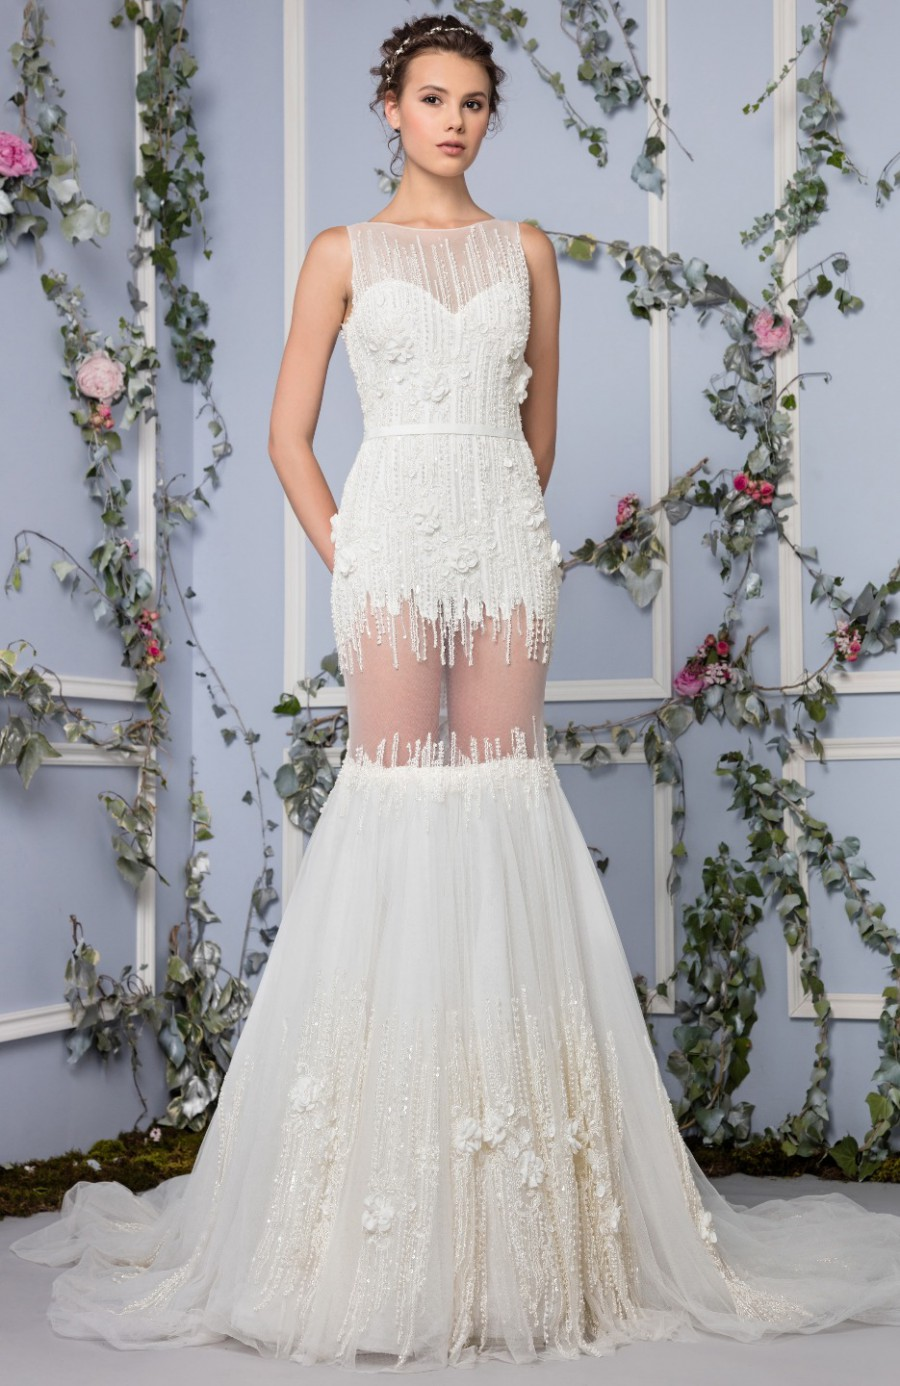 55 Of The Most Unique Wedding Styles 2017